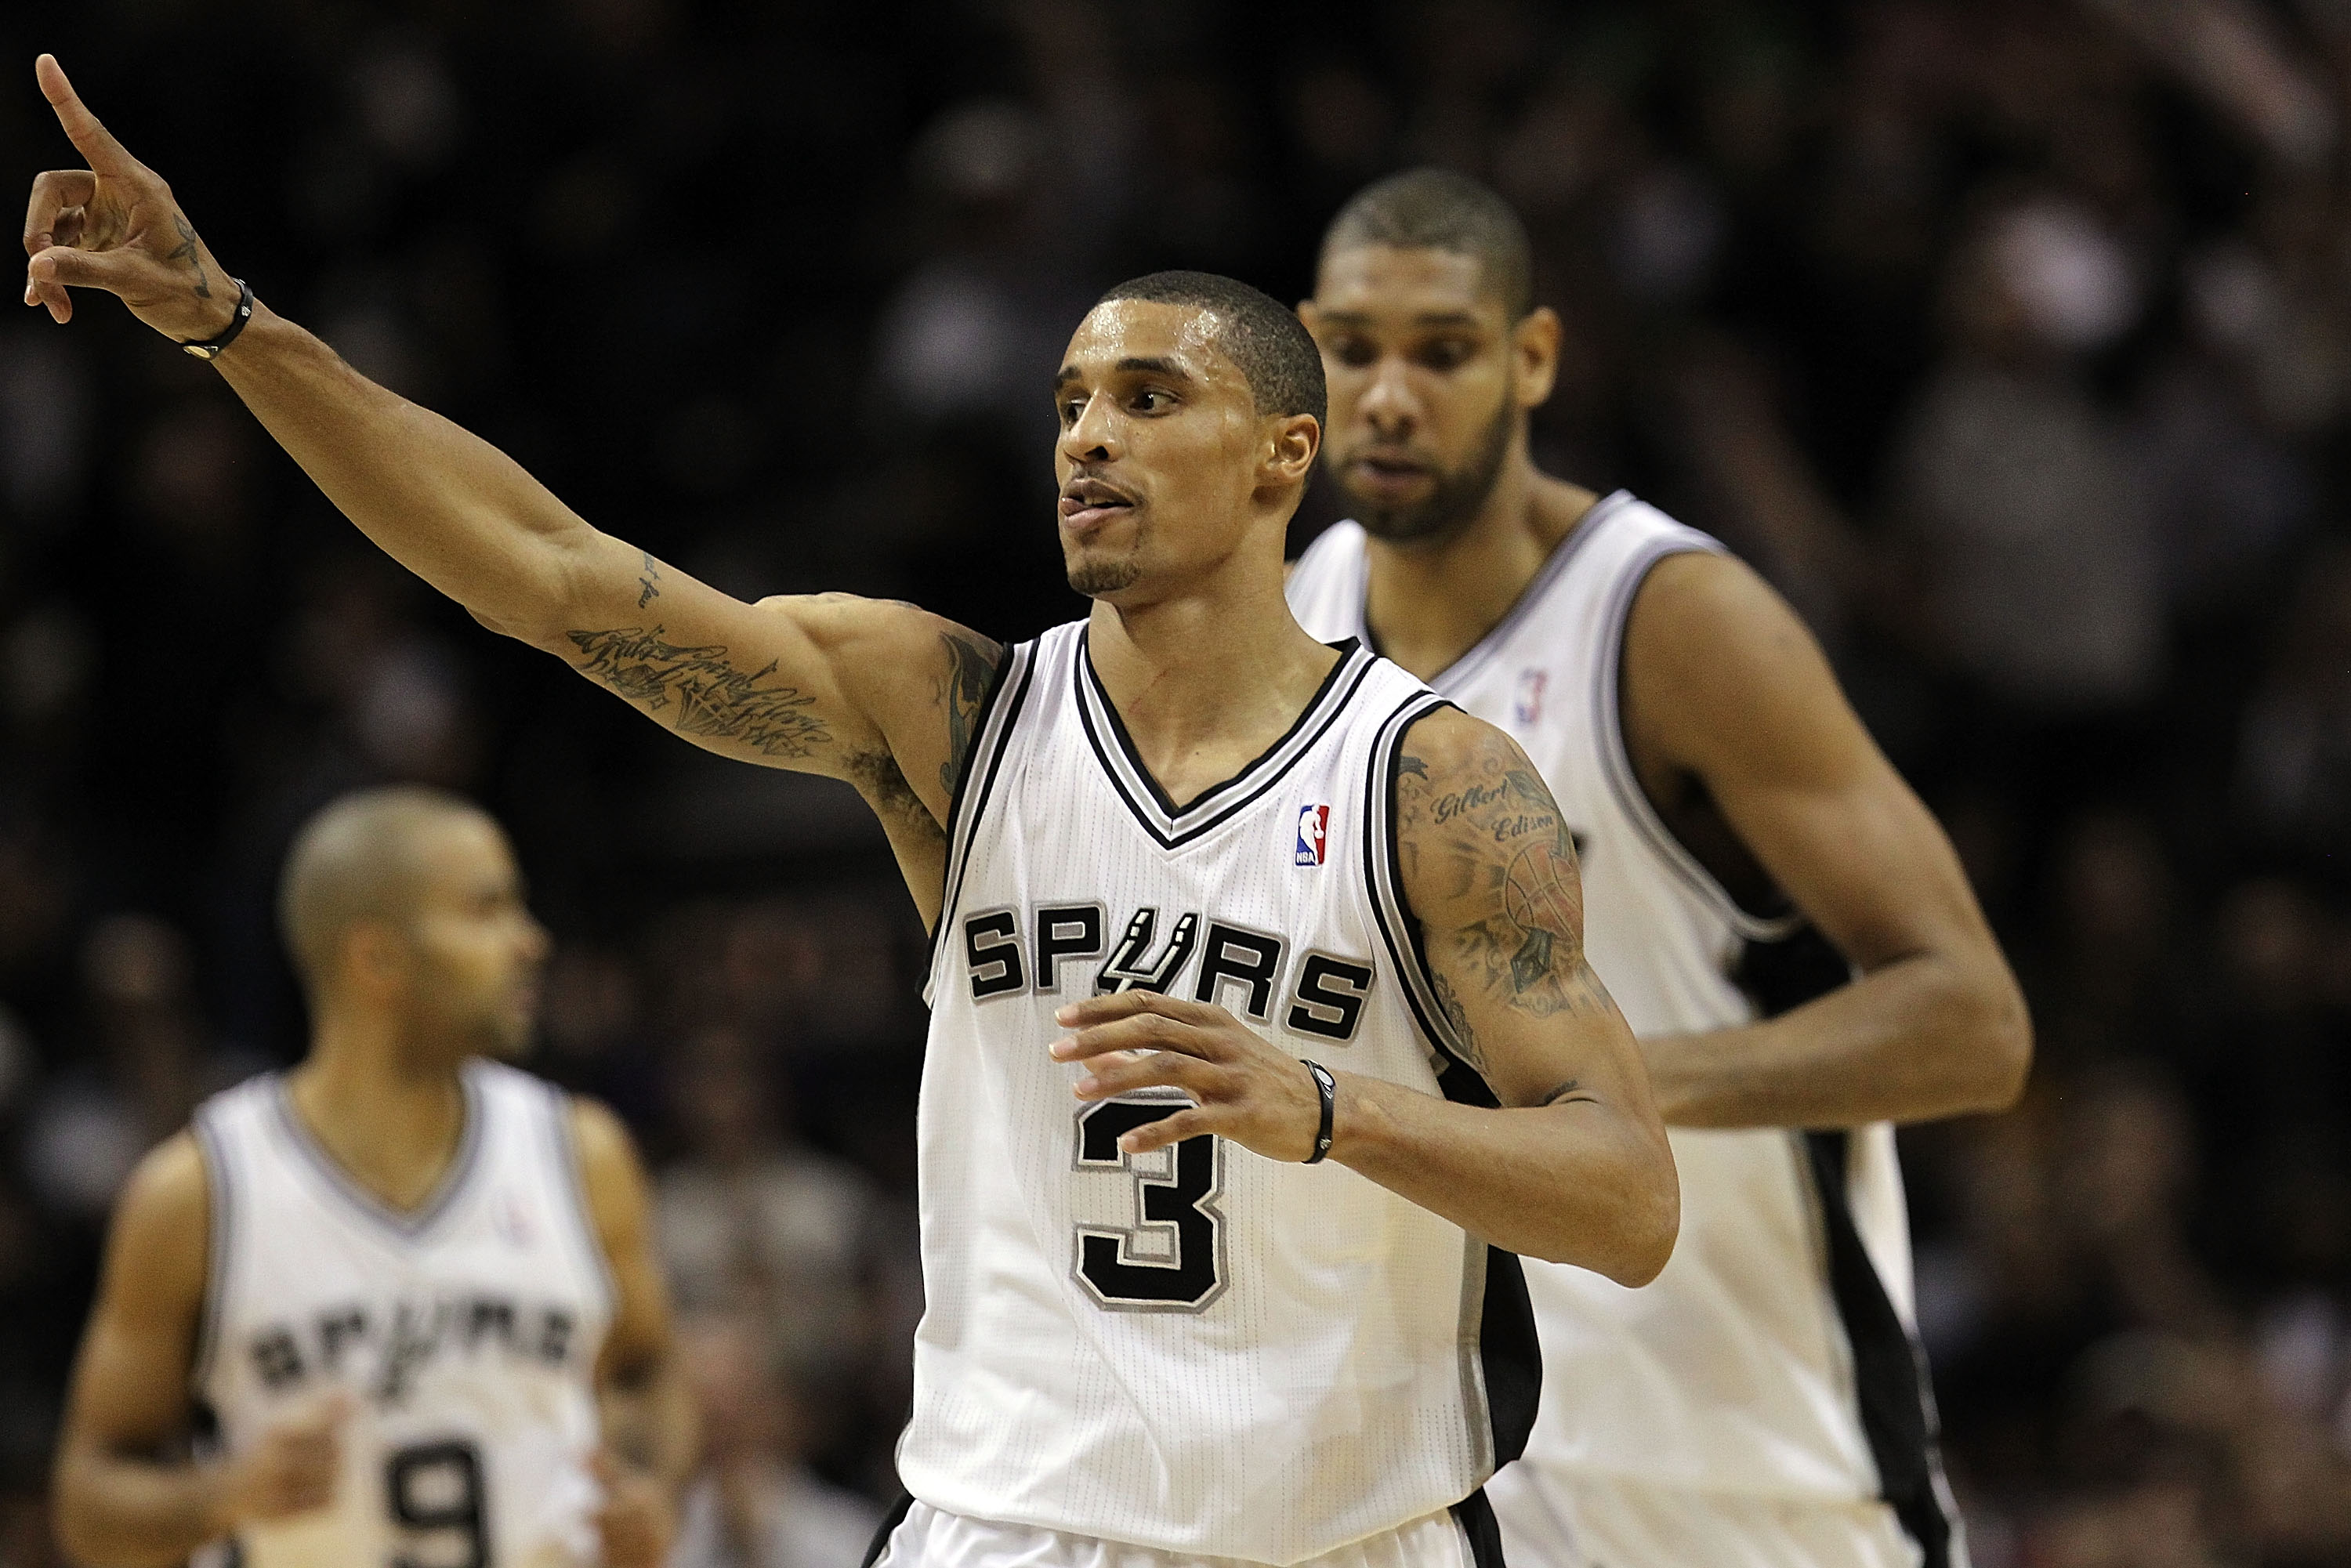 SAN ANTONIO, TX - DECEMBER 28:  Guard George Hill #3 of the San Antonio Spurs during play against the Los Angeles Lakers at AT&T Center on December 28, 2010 in San Antonio, Texas.  NOTE TO USER: User expressly acknowledges and agrees that, by downloading